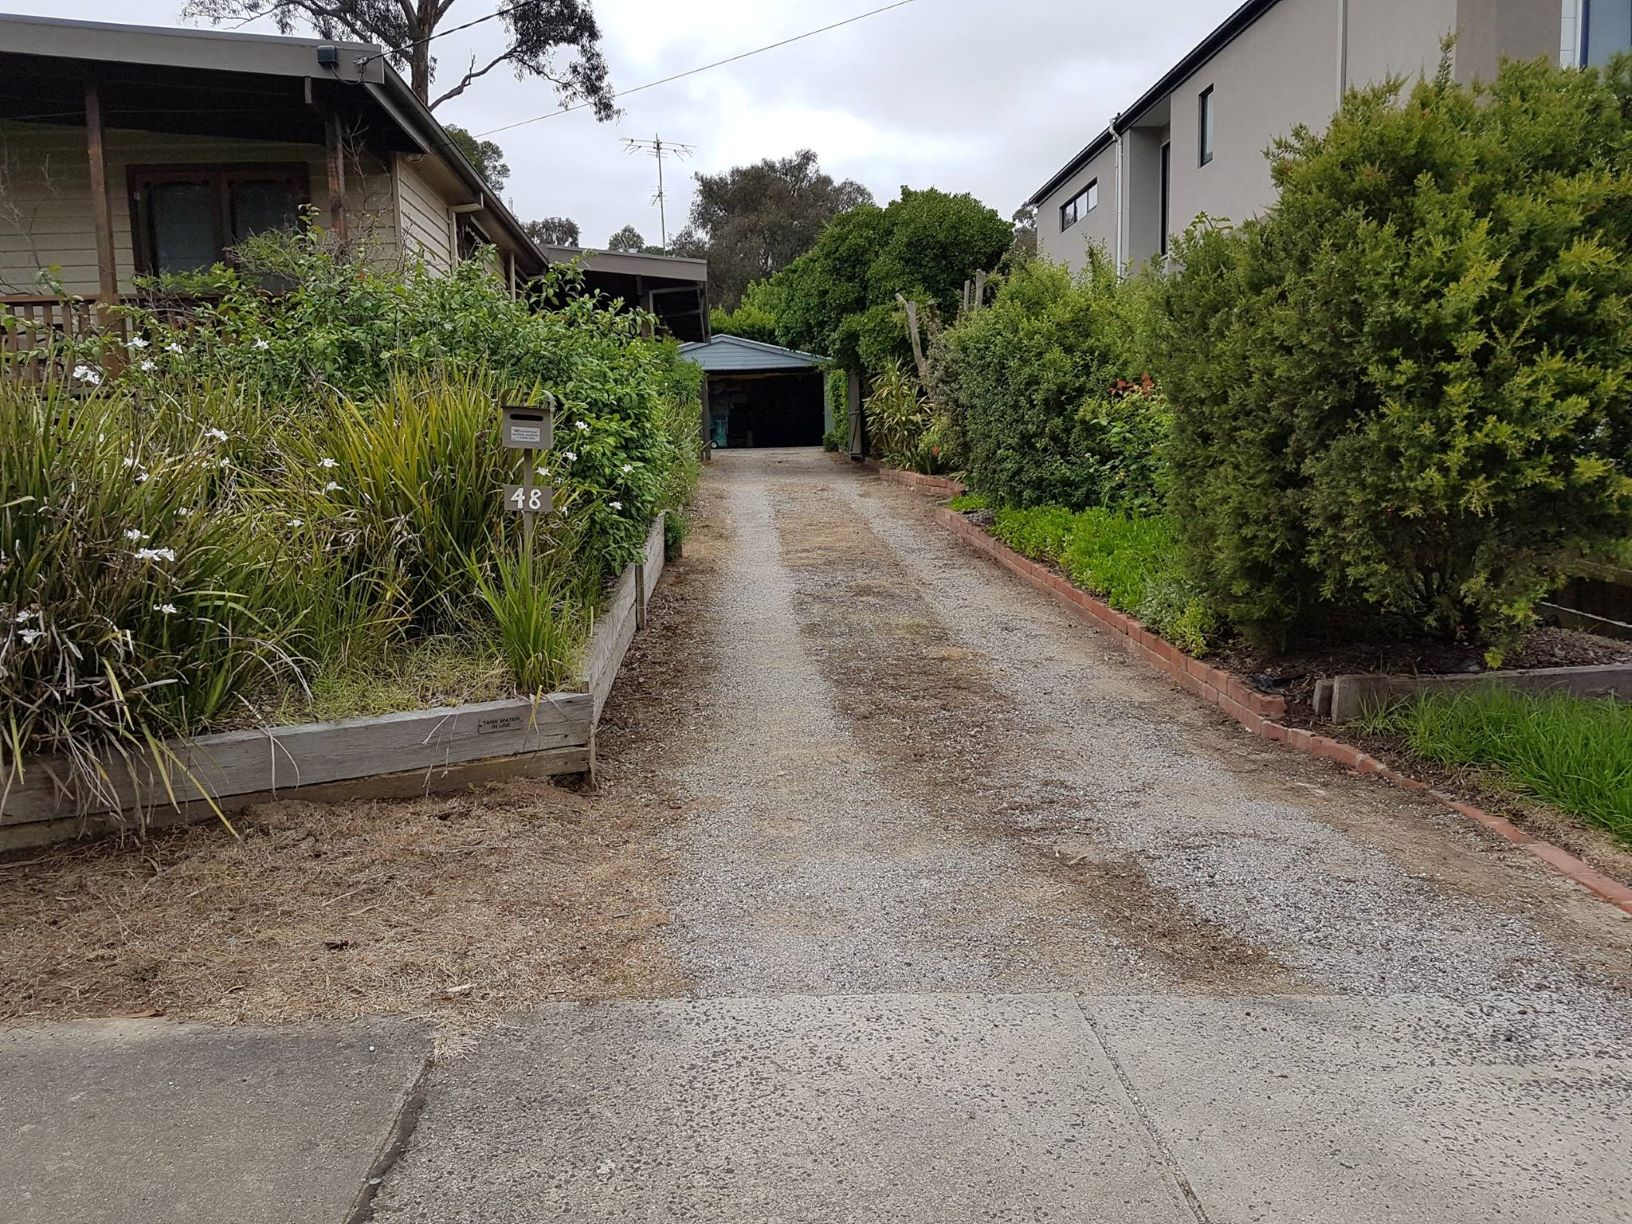 Before driveway resurfacing, Eltham driveway, Lillydale tippings driveway.